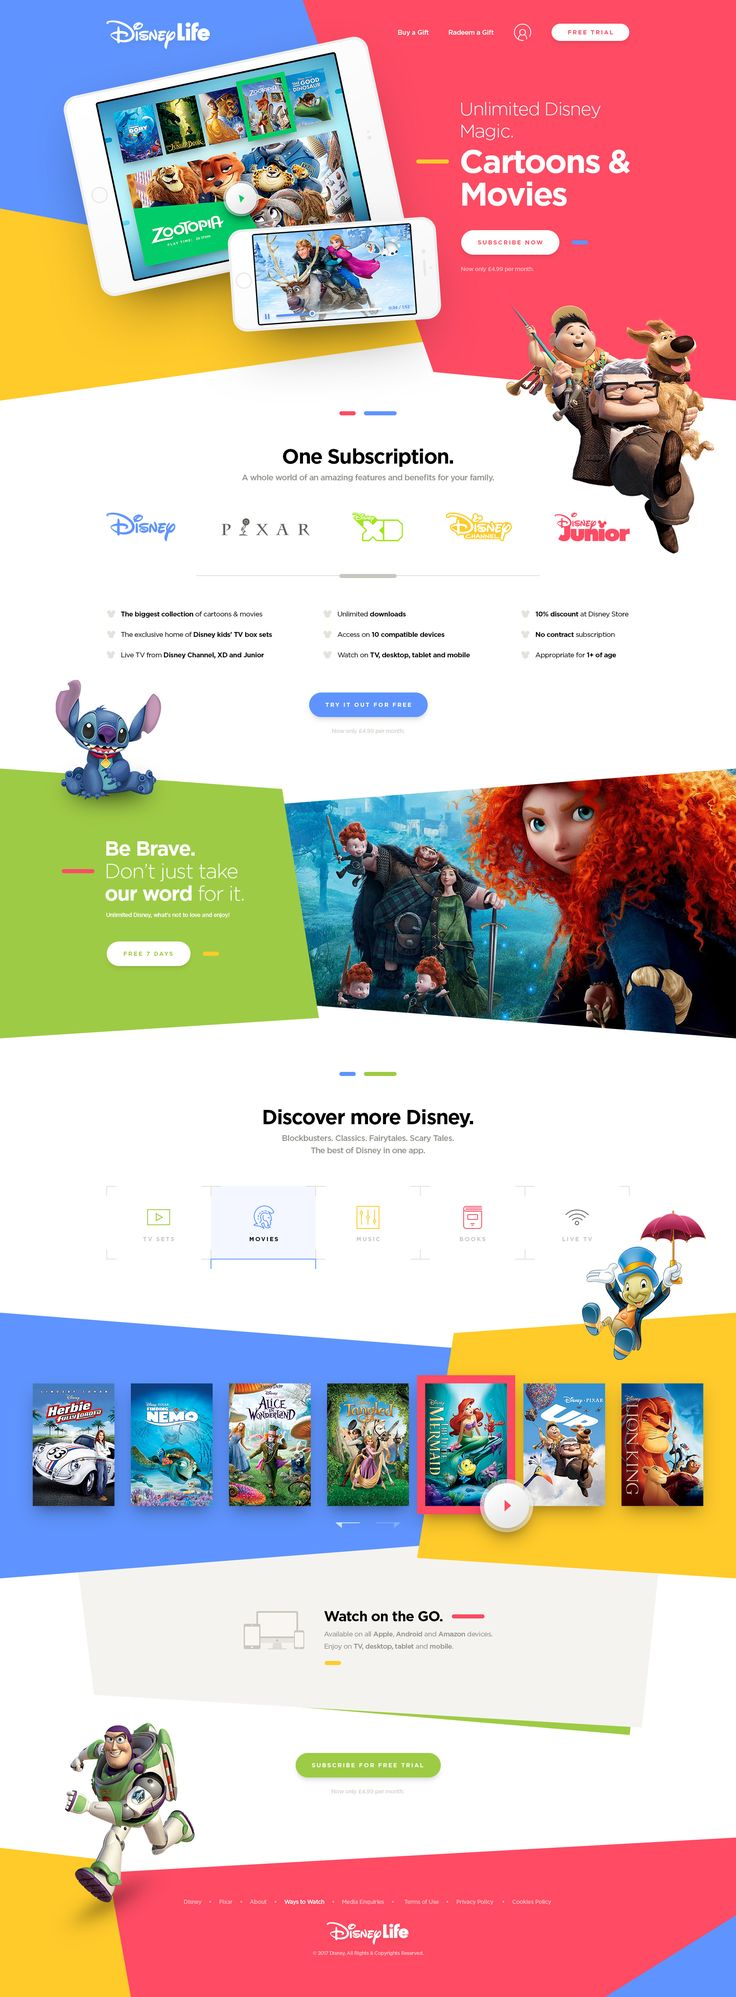 Disneylife - website design inspiration